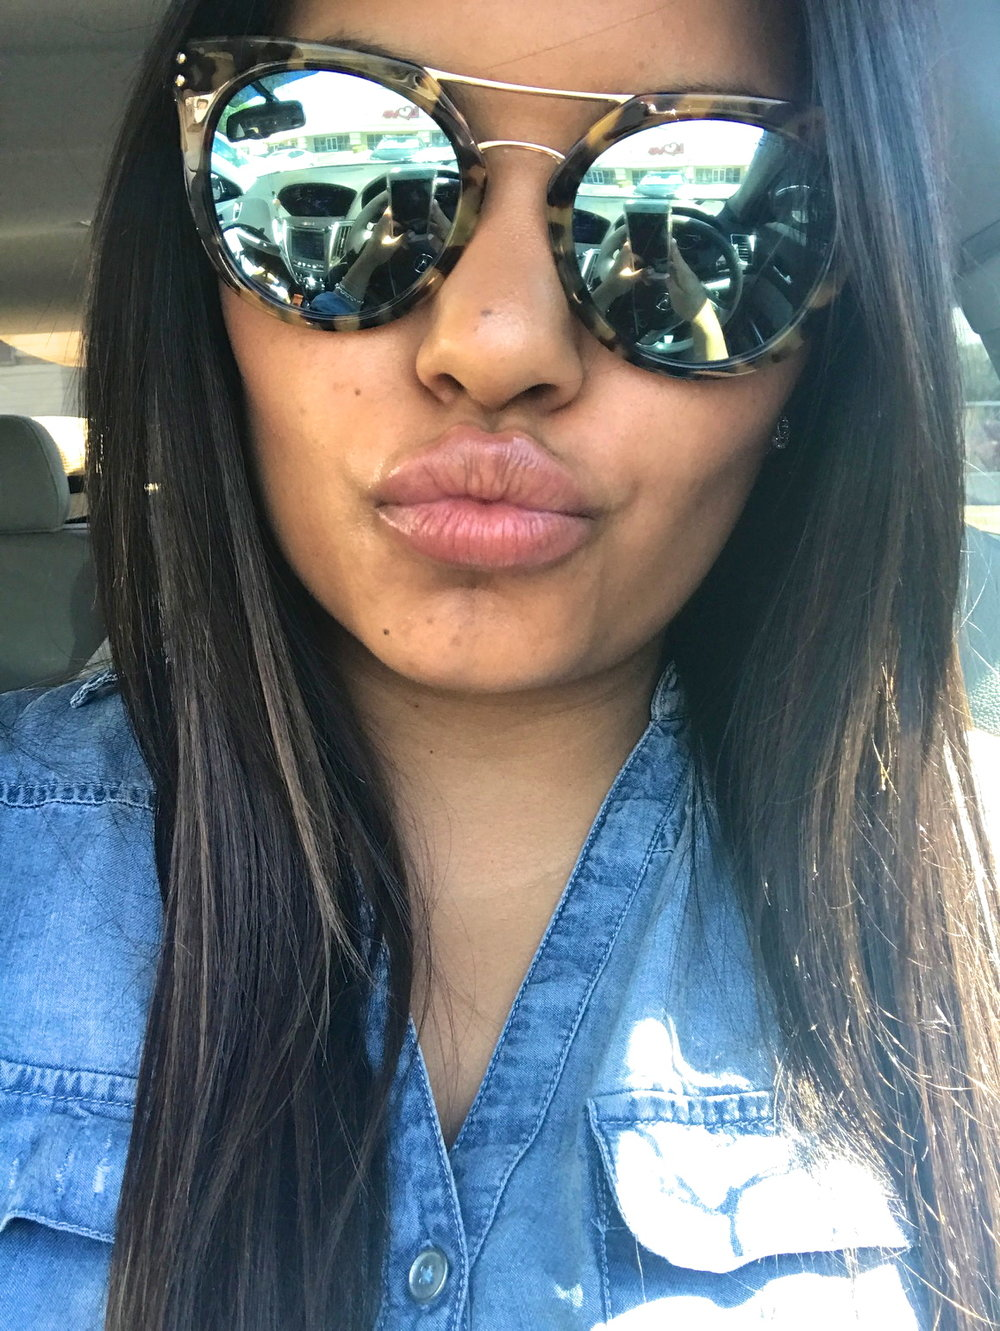 Richelle-Hedlund-Lip-Procedure-Review-Before-After-Puckers-Pumps-Blog7.jpg